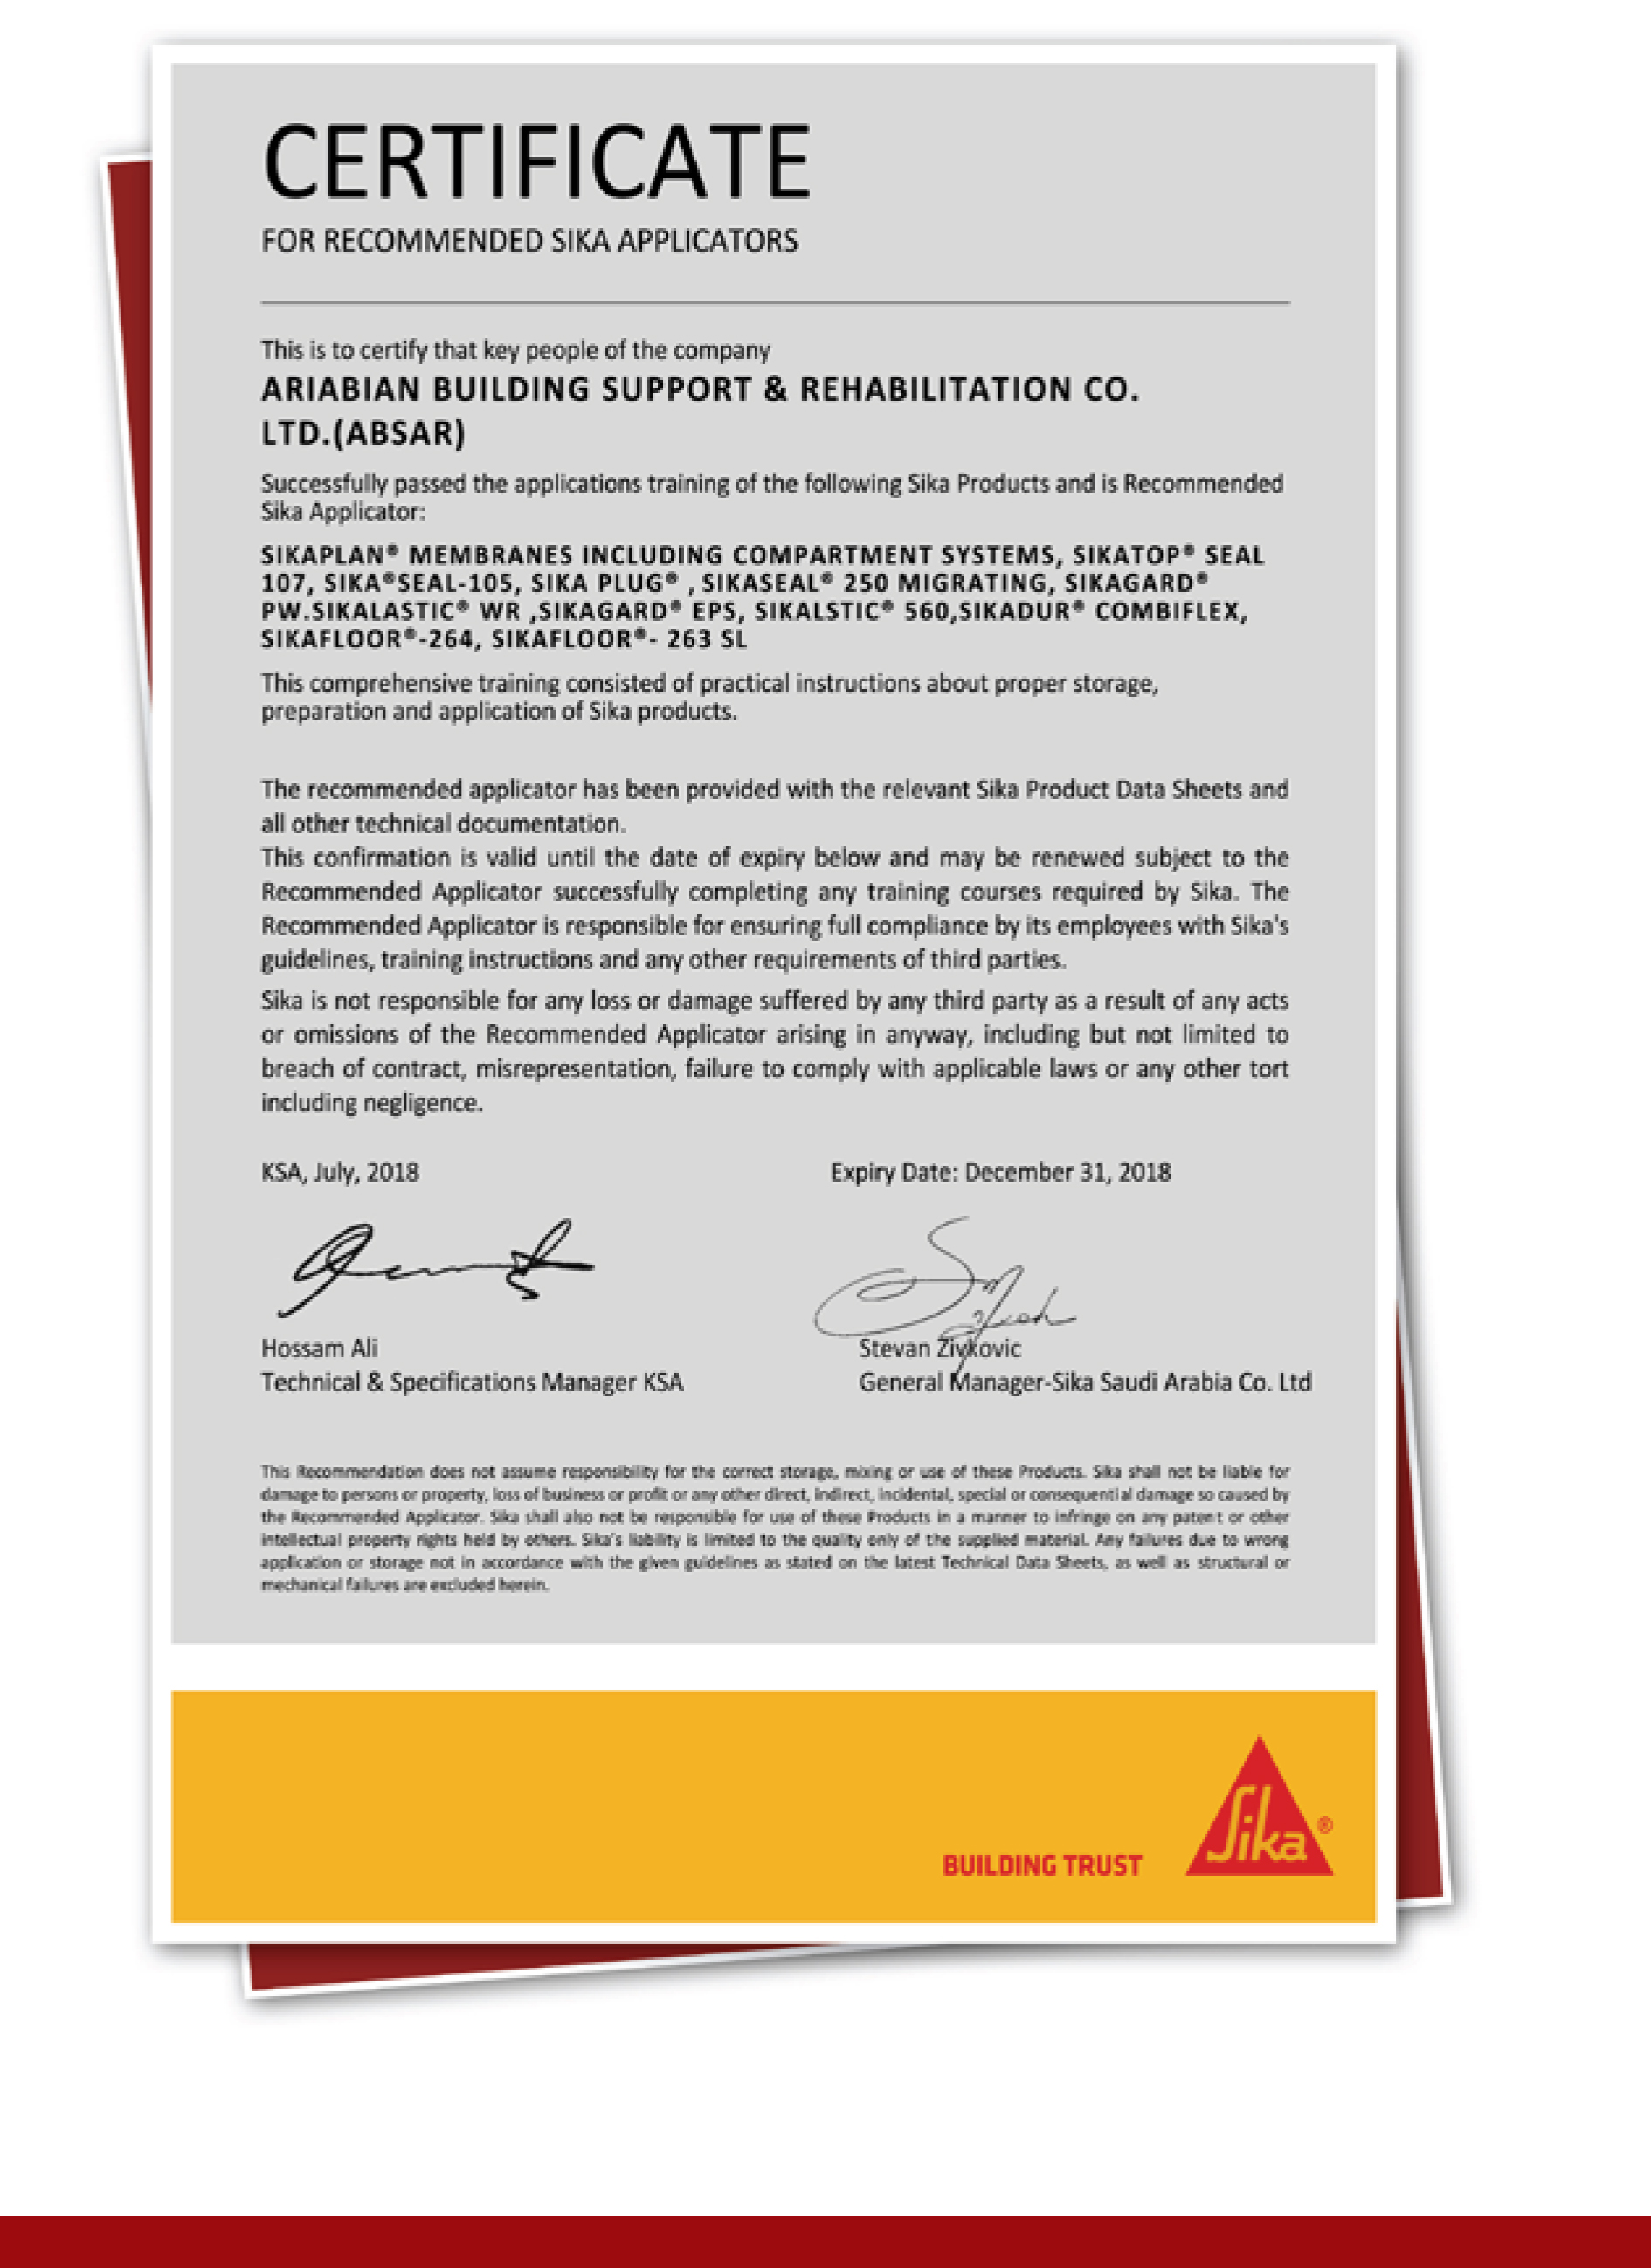 Certificates - Absar